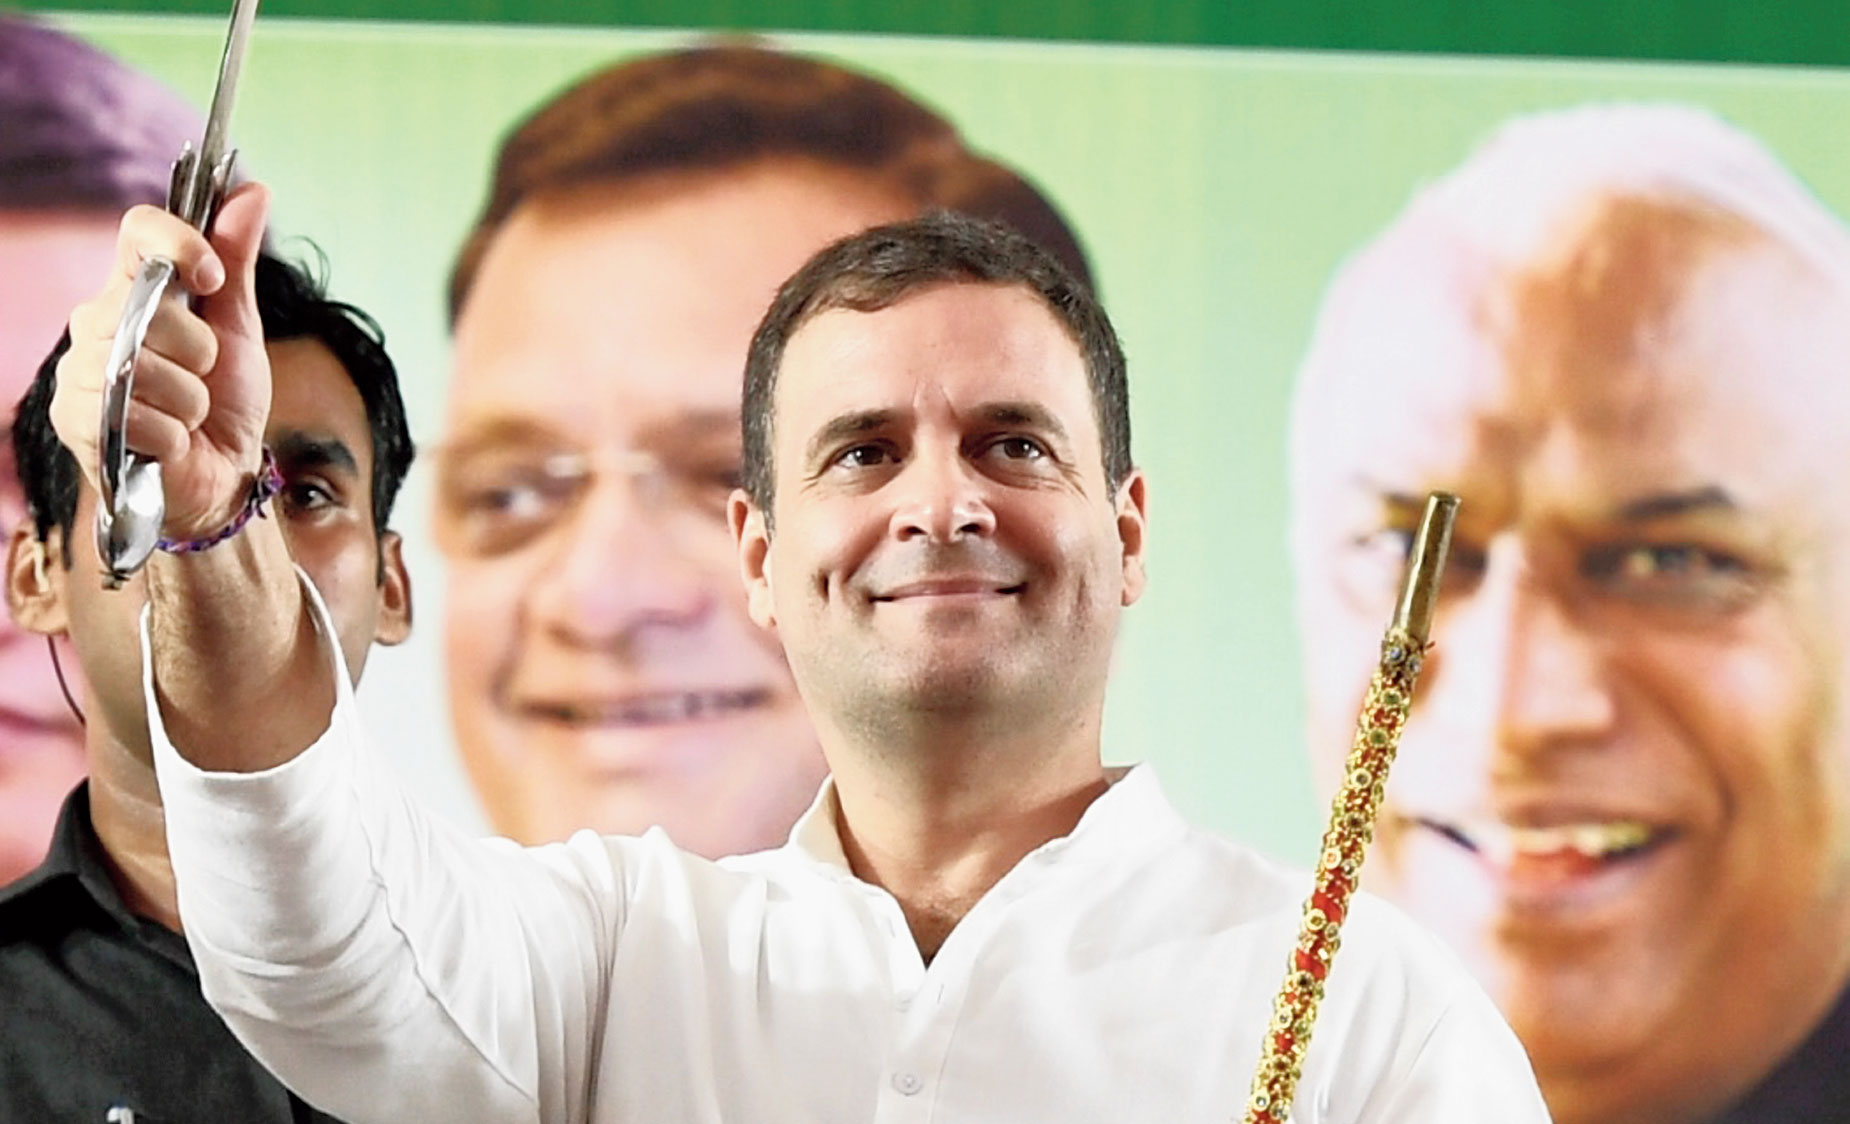 Congress leader Rahul Gandhi posted the video on Twitter, calling the BJP candidate the